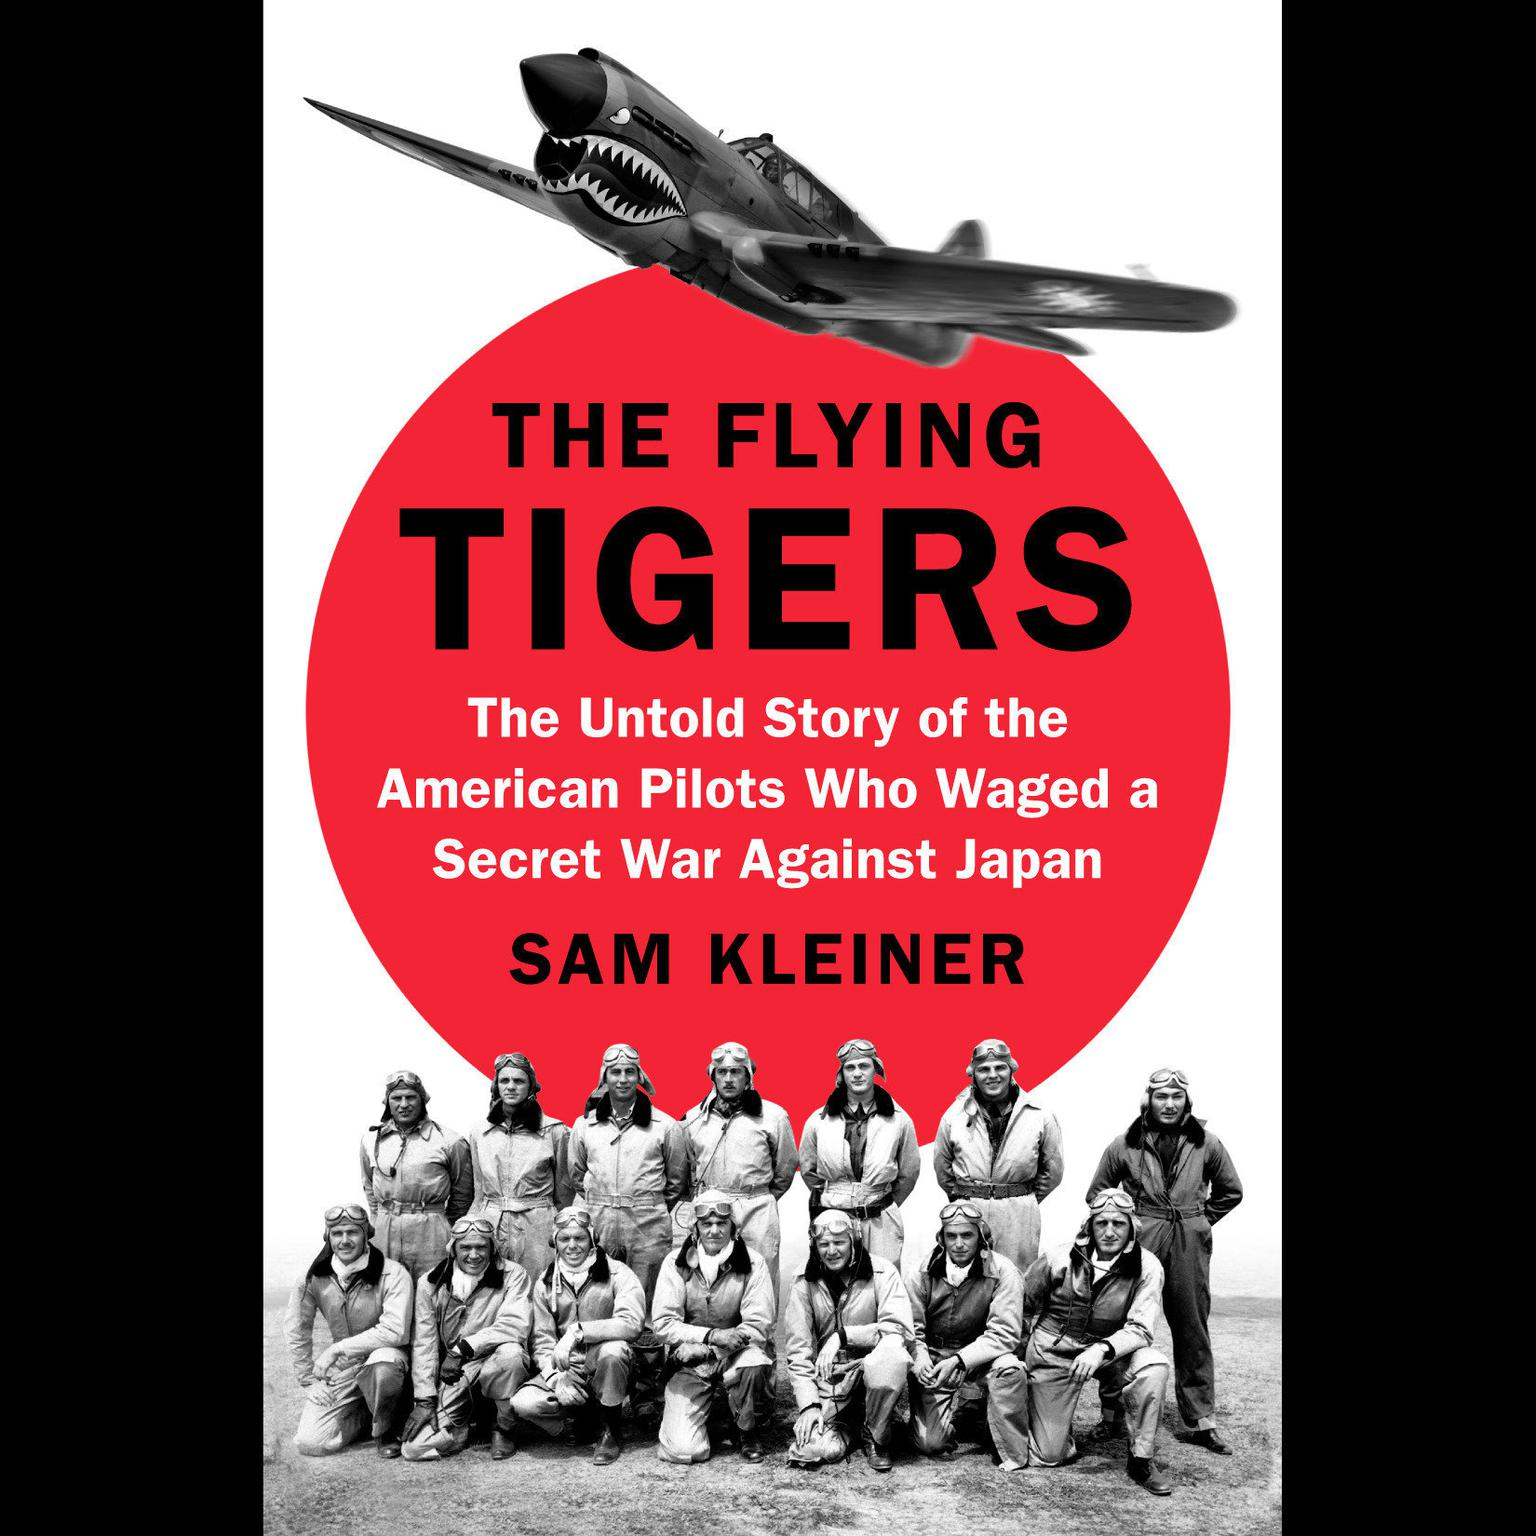 Printable The Flying Tigers: The Untold Story of the American Pilots Who Waged a Secret War Against Japan Before Pearl Harbor Audiobook Cover Art